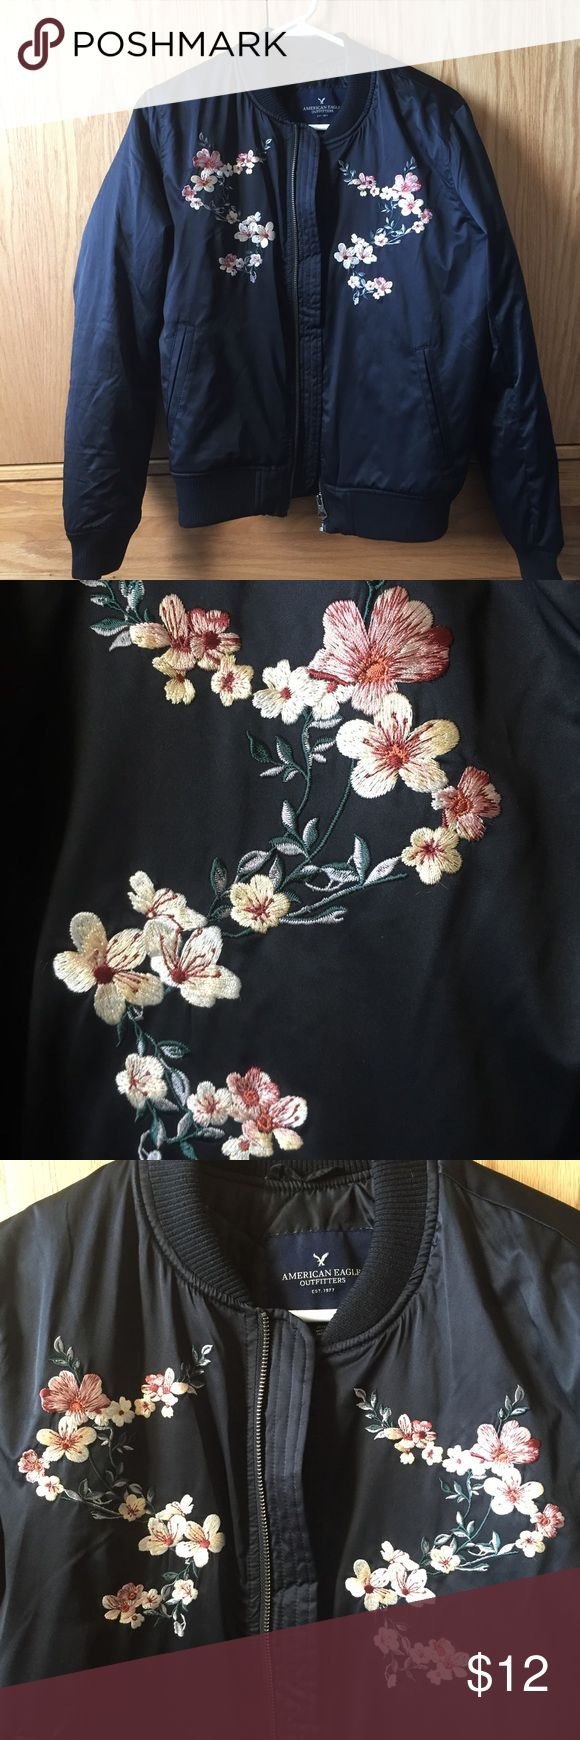 Embroidered American Eagle Jacket Floral embroidered American Eagle Jacket. Size medium in great condition. Feel free to ask any additional questions.   💕 please make offers through offer button 💰 bundle for a 20% off discount  🚬🐶 smoke & pet free home  🚫 sorry no trades American Eagle Outfitters Jackets & Coats